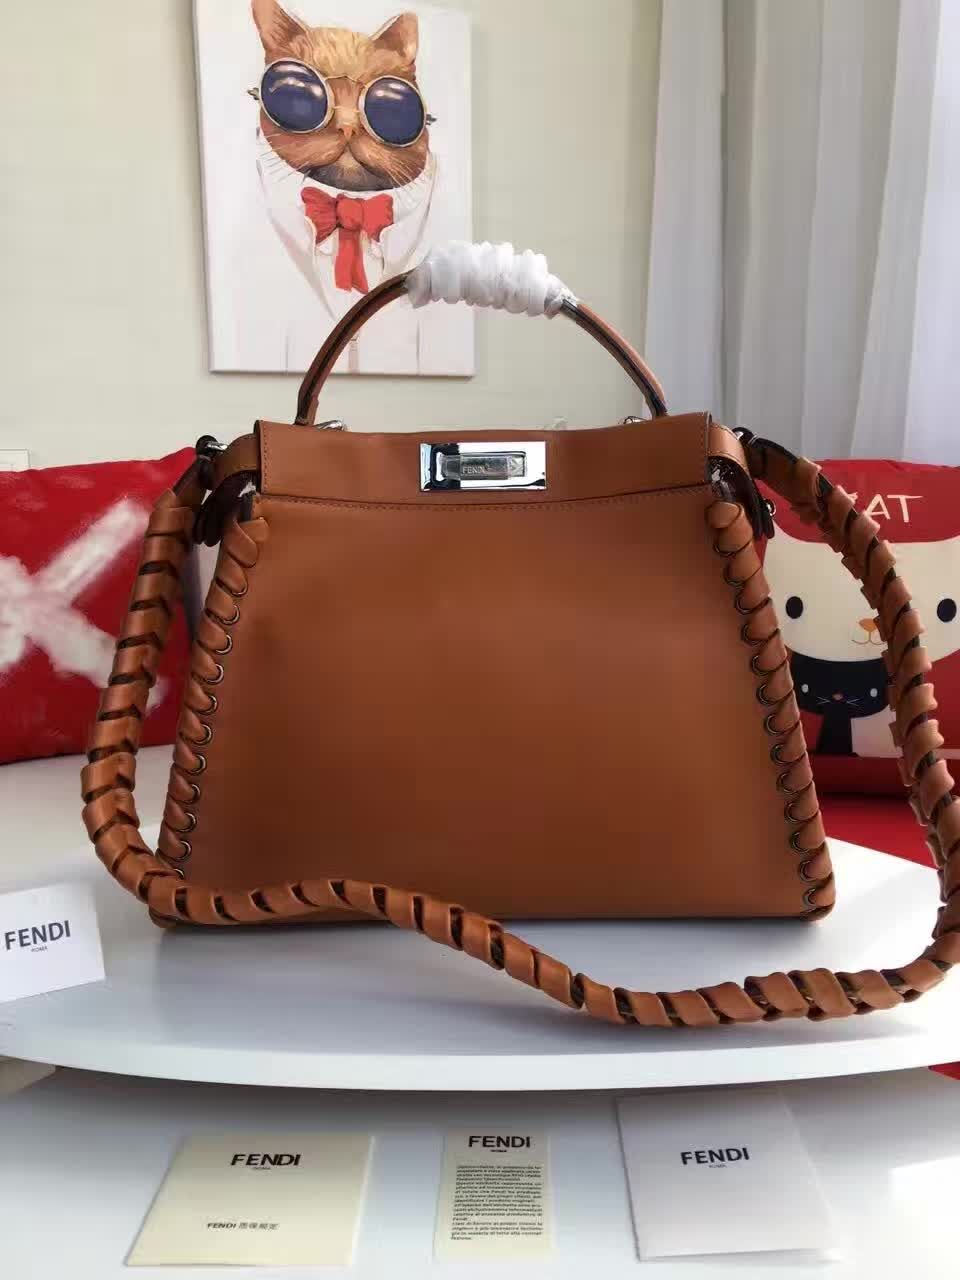 fendi Bag, ID : 60162(FORSALE:a@yybags.com), fendi 2016, fendi messenger bags women, fendi hang bag, fendi online shopping, fendi brand name bags, edoardo and adele fendi, vintage fendi striped bag, fendi handbags for less, how much are fendi bags, fendi women, fendi handbag handles, fendi zucca bag sale, fendi organizer handbags #fendiBag #fendi #knock #off